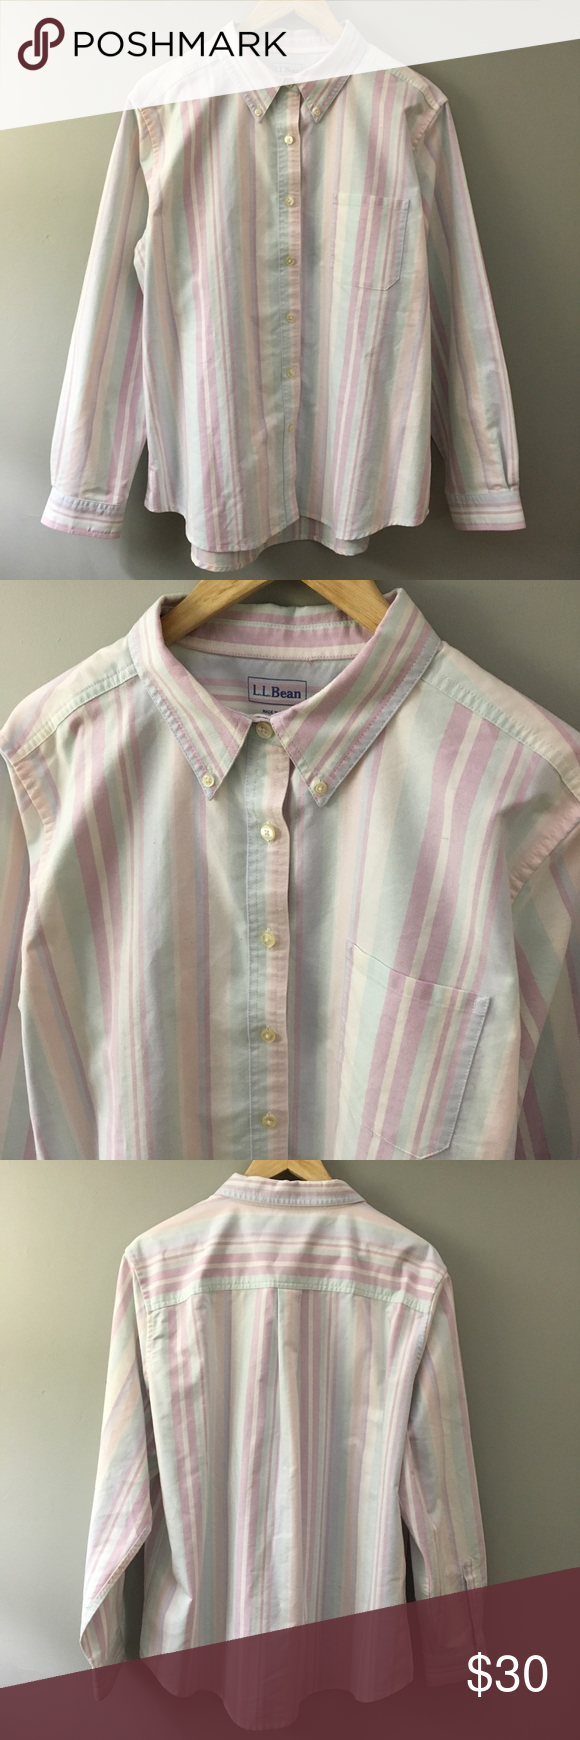 8af210fc6d Women's L.L. Bean Pastel Stripe Button Up Shirt Women's L.L. Bean Pastel Stripe  Button Up Shirt Size XL Reg Like New! L.L. Bean Tops Button Down Shirts